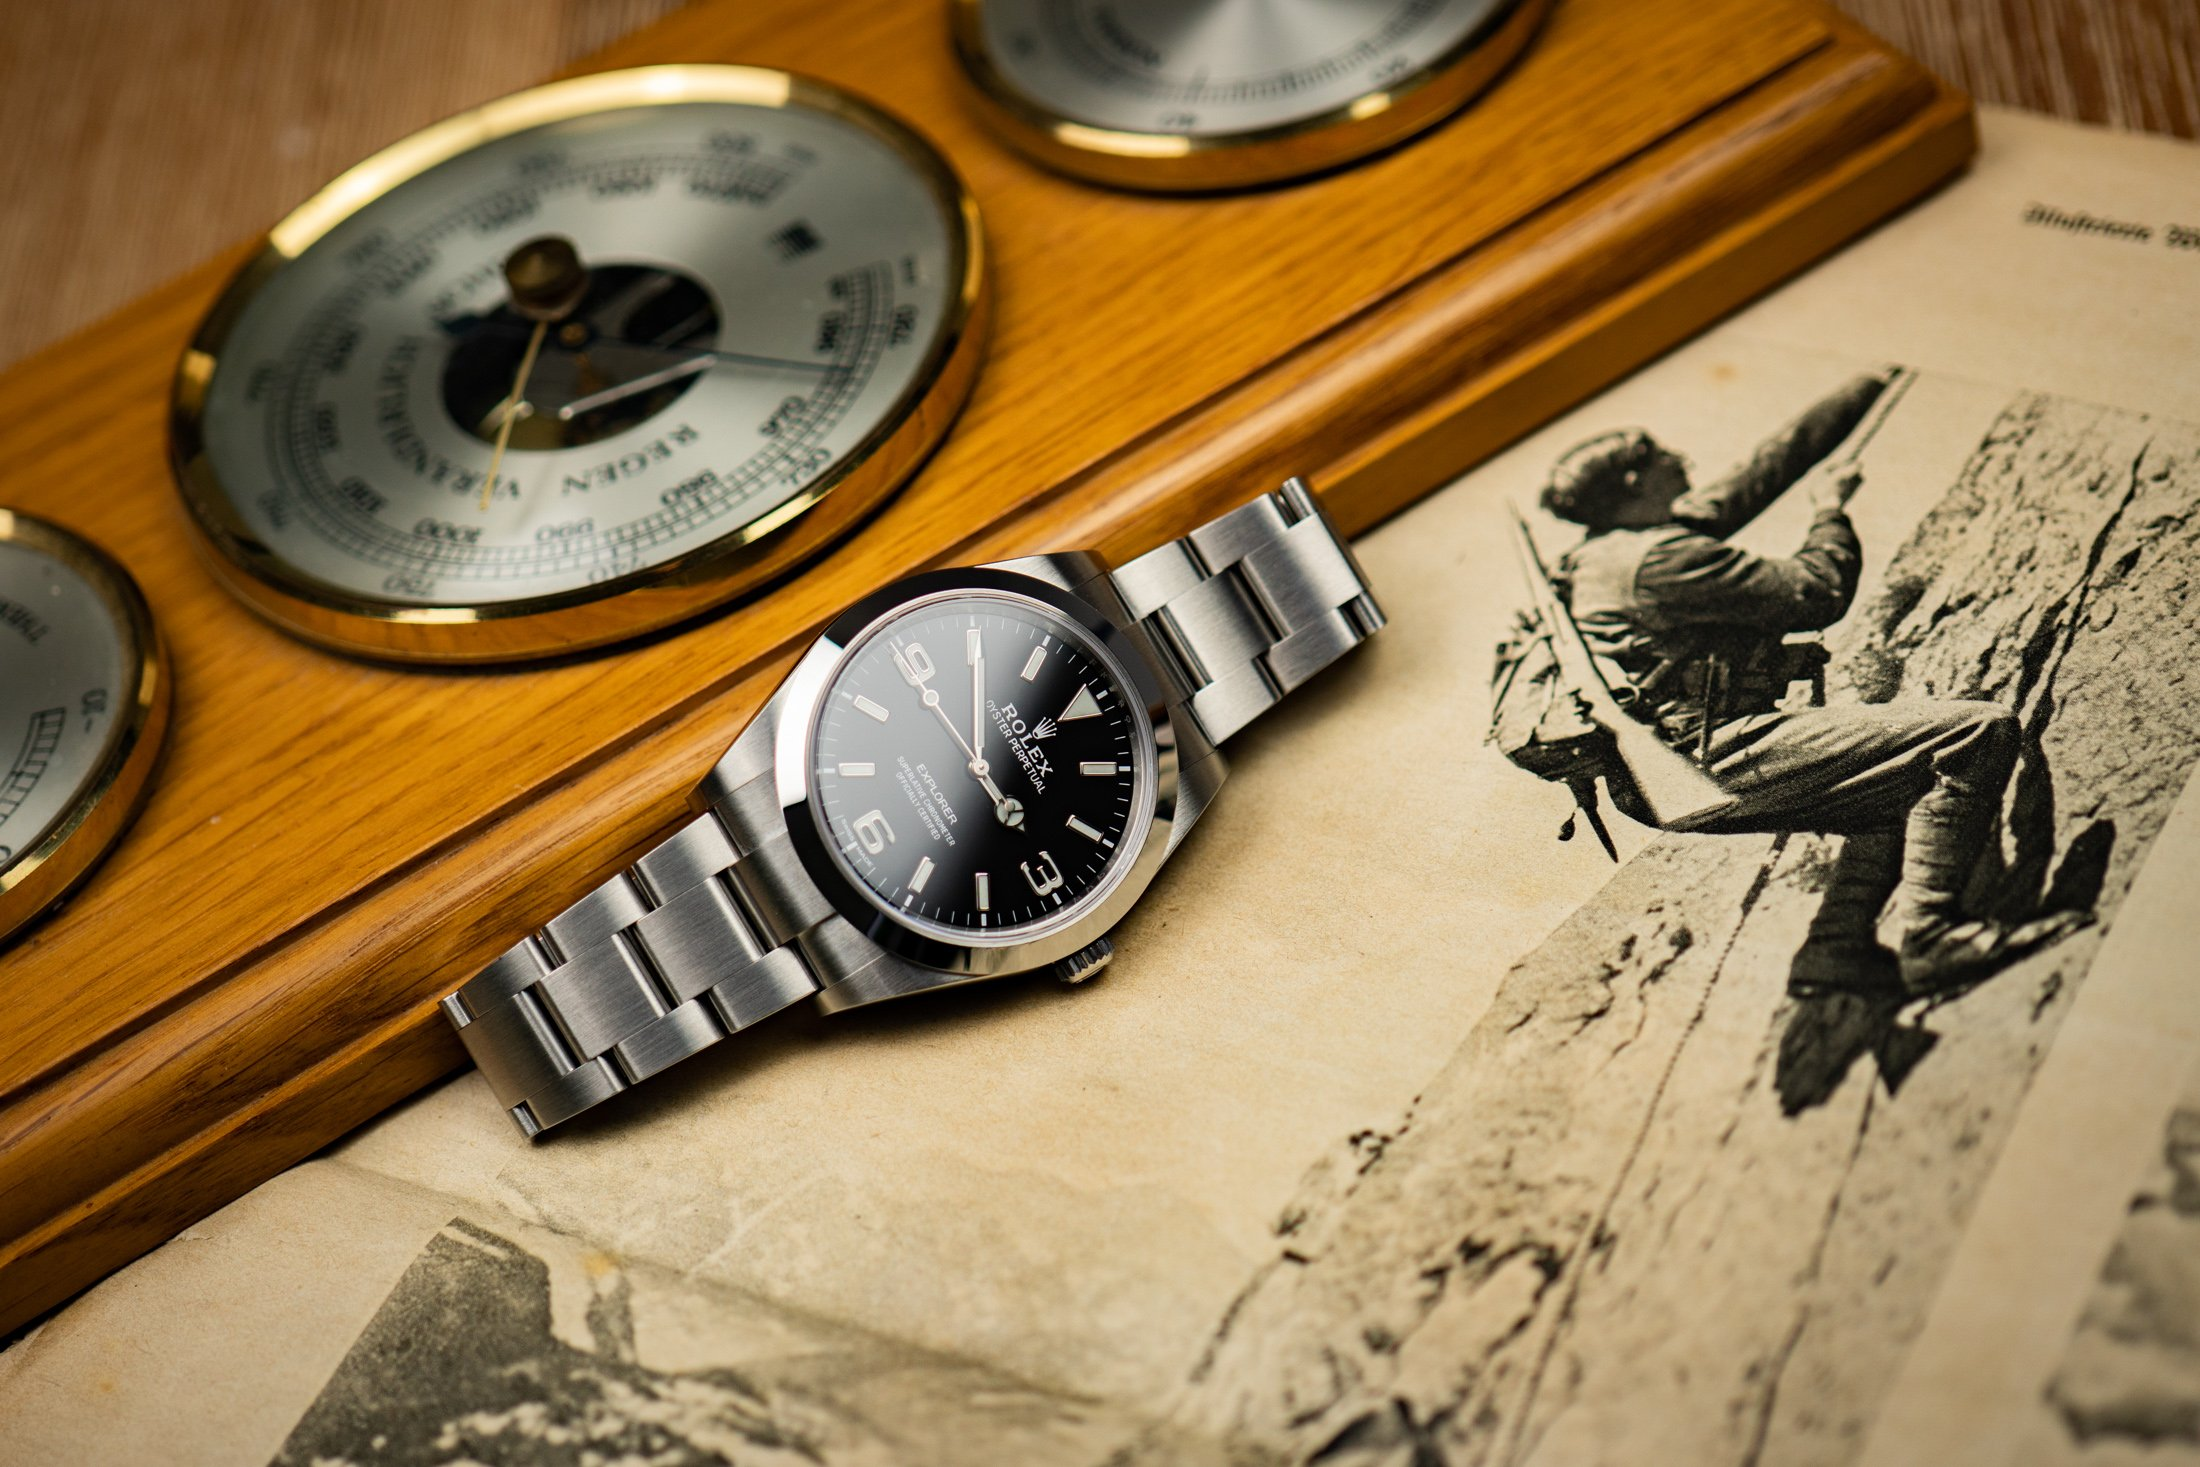 Rolex-Explorer-I-Geschichte-Edmund-Hillary-Mount-Everest-Himalaya-Expedition-1953